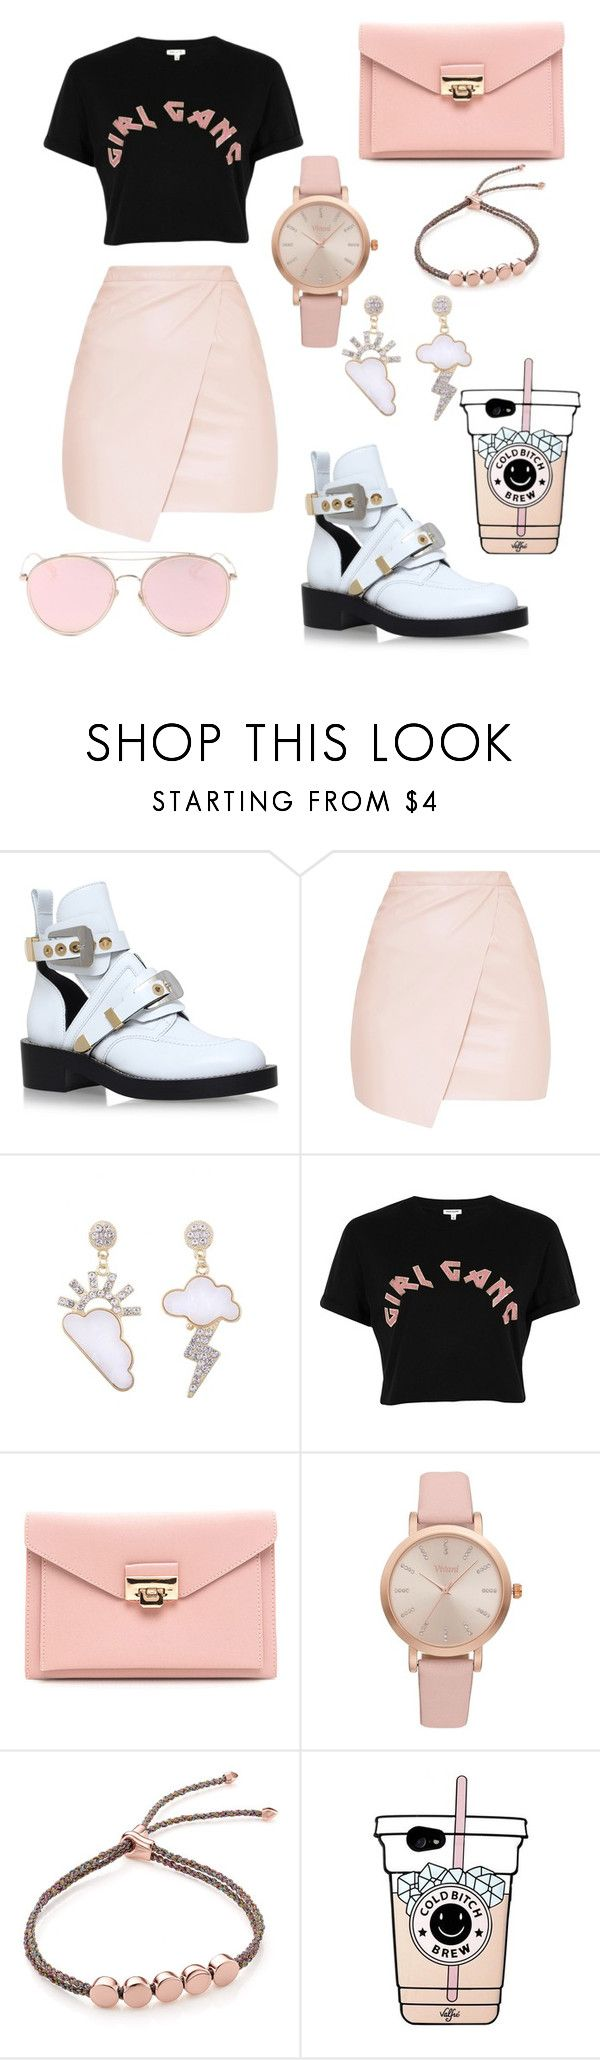 """""""Girls band"""" by fiona-aless ❤ liked on Polyvore featuring Balenciaga, River Island, Vivani, Monica Vinader and LMNT"""